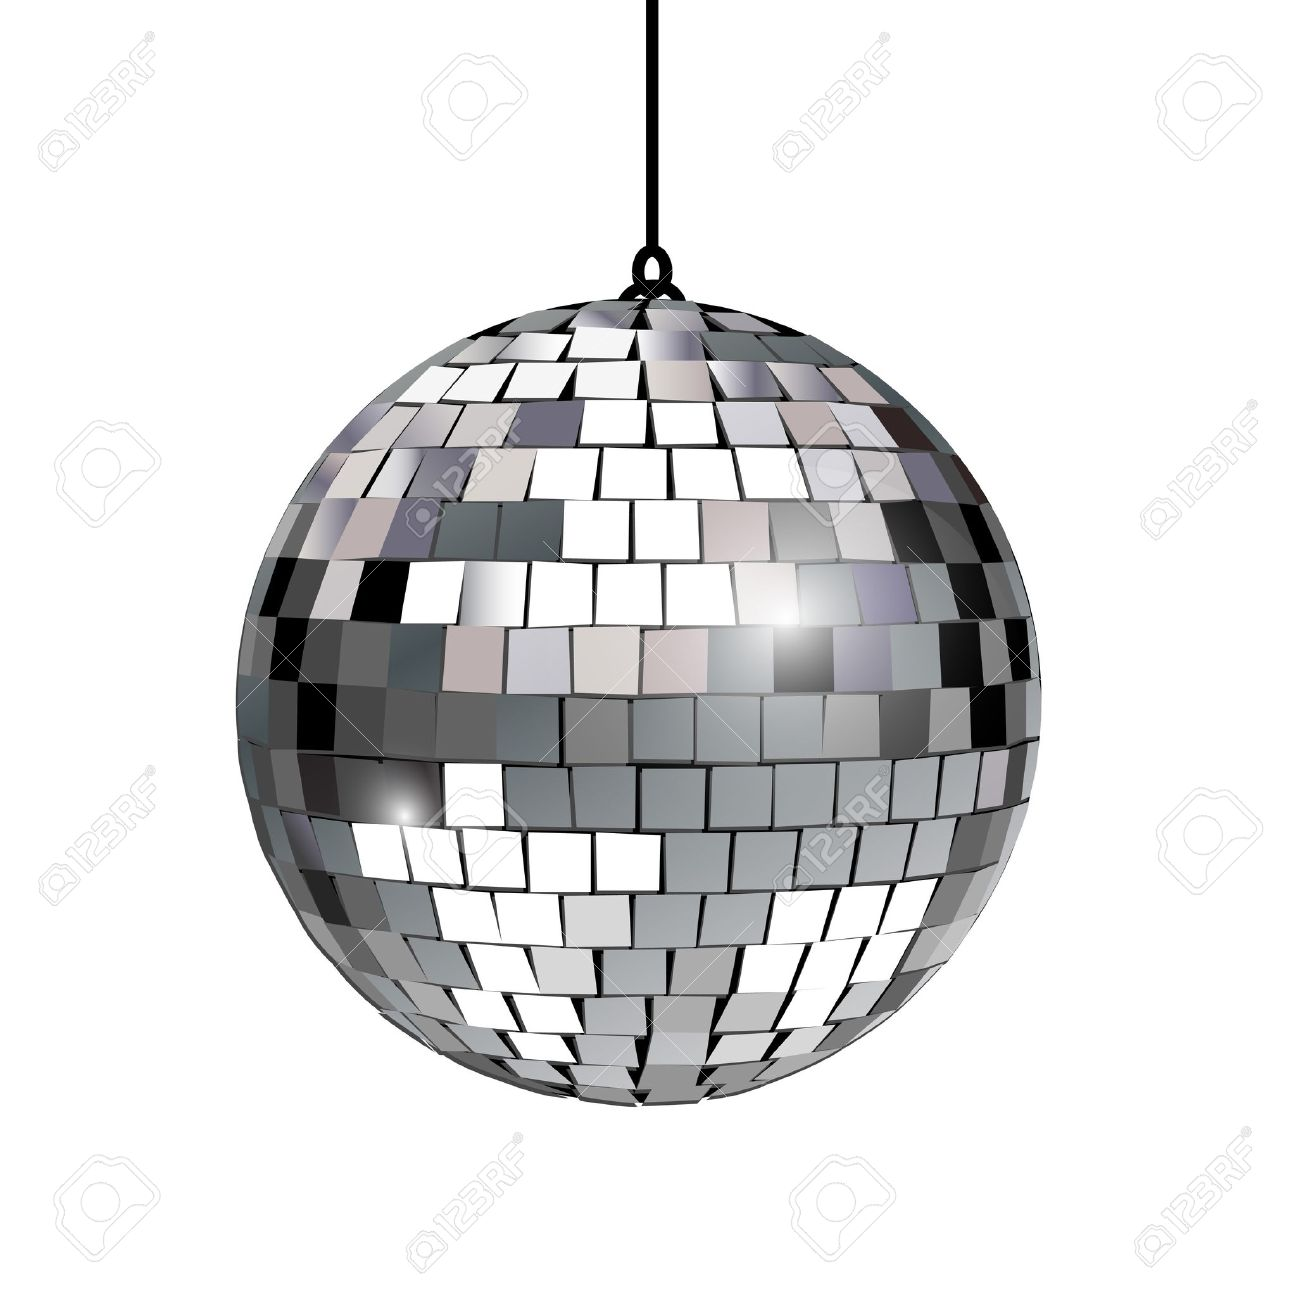 Disco Ball clipart #19, Download drawings